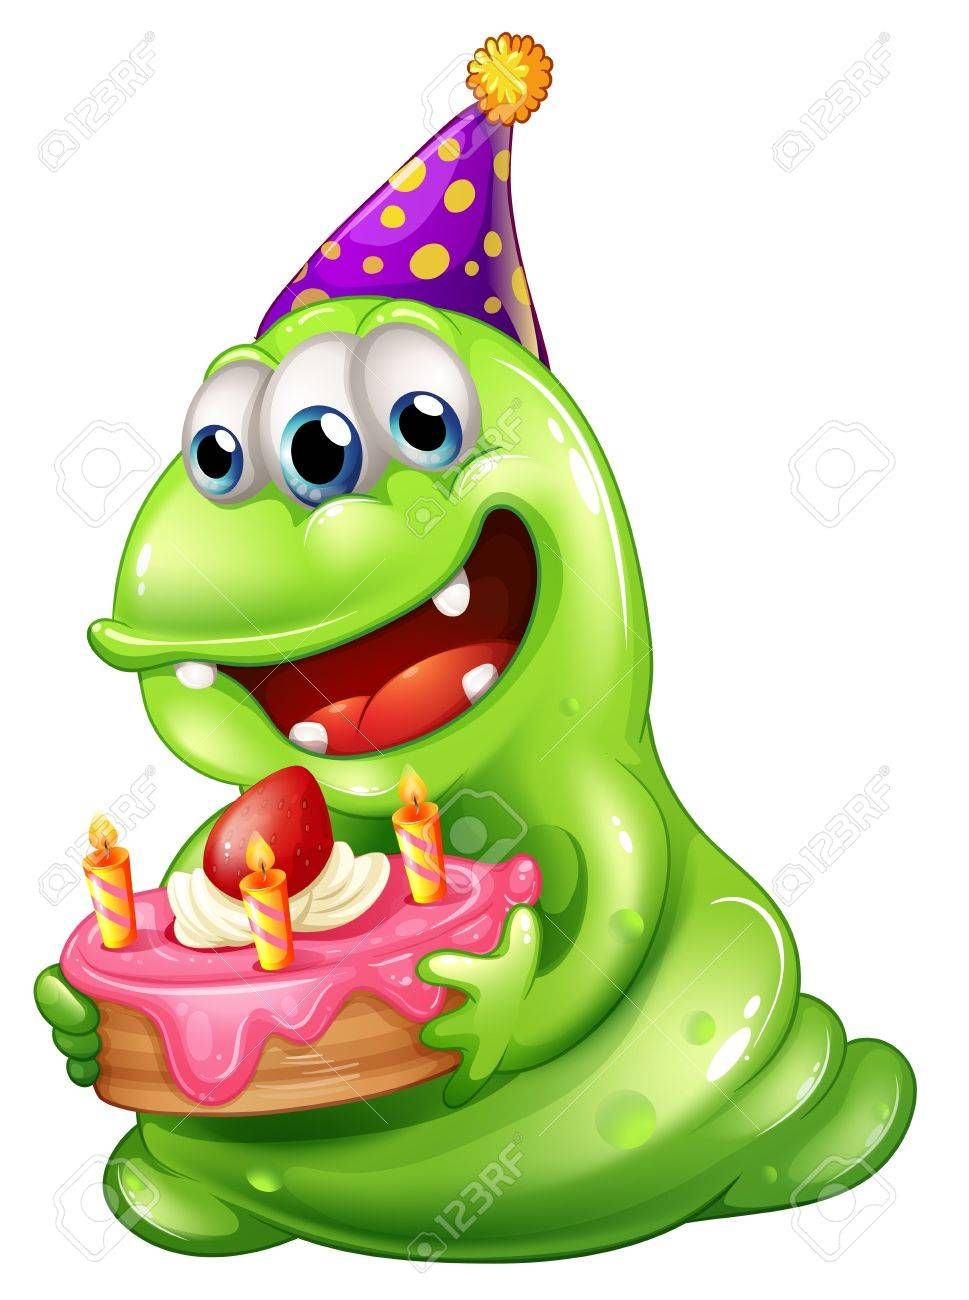 Illustration of a greenslime monster celebrating a birthday on a white background Stock Vector - 22065714